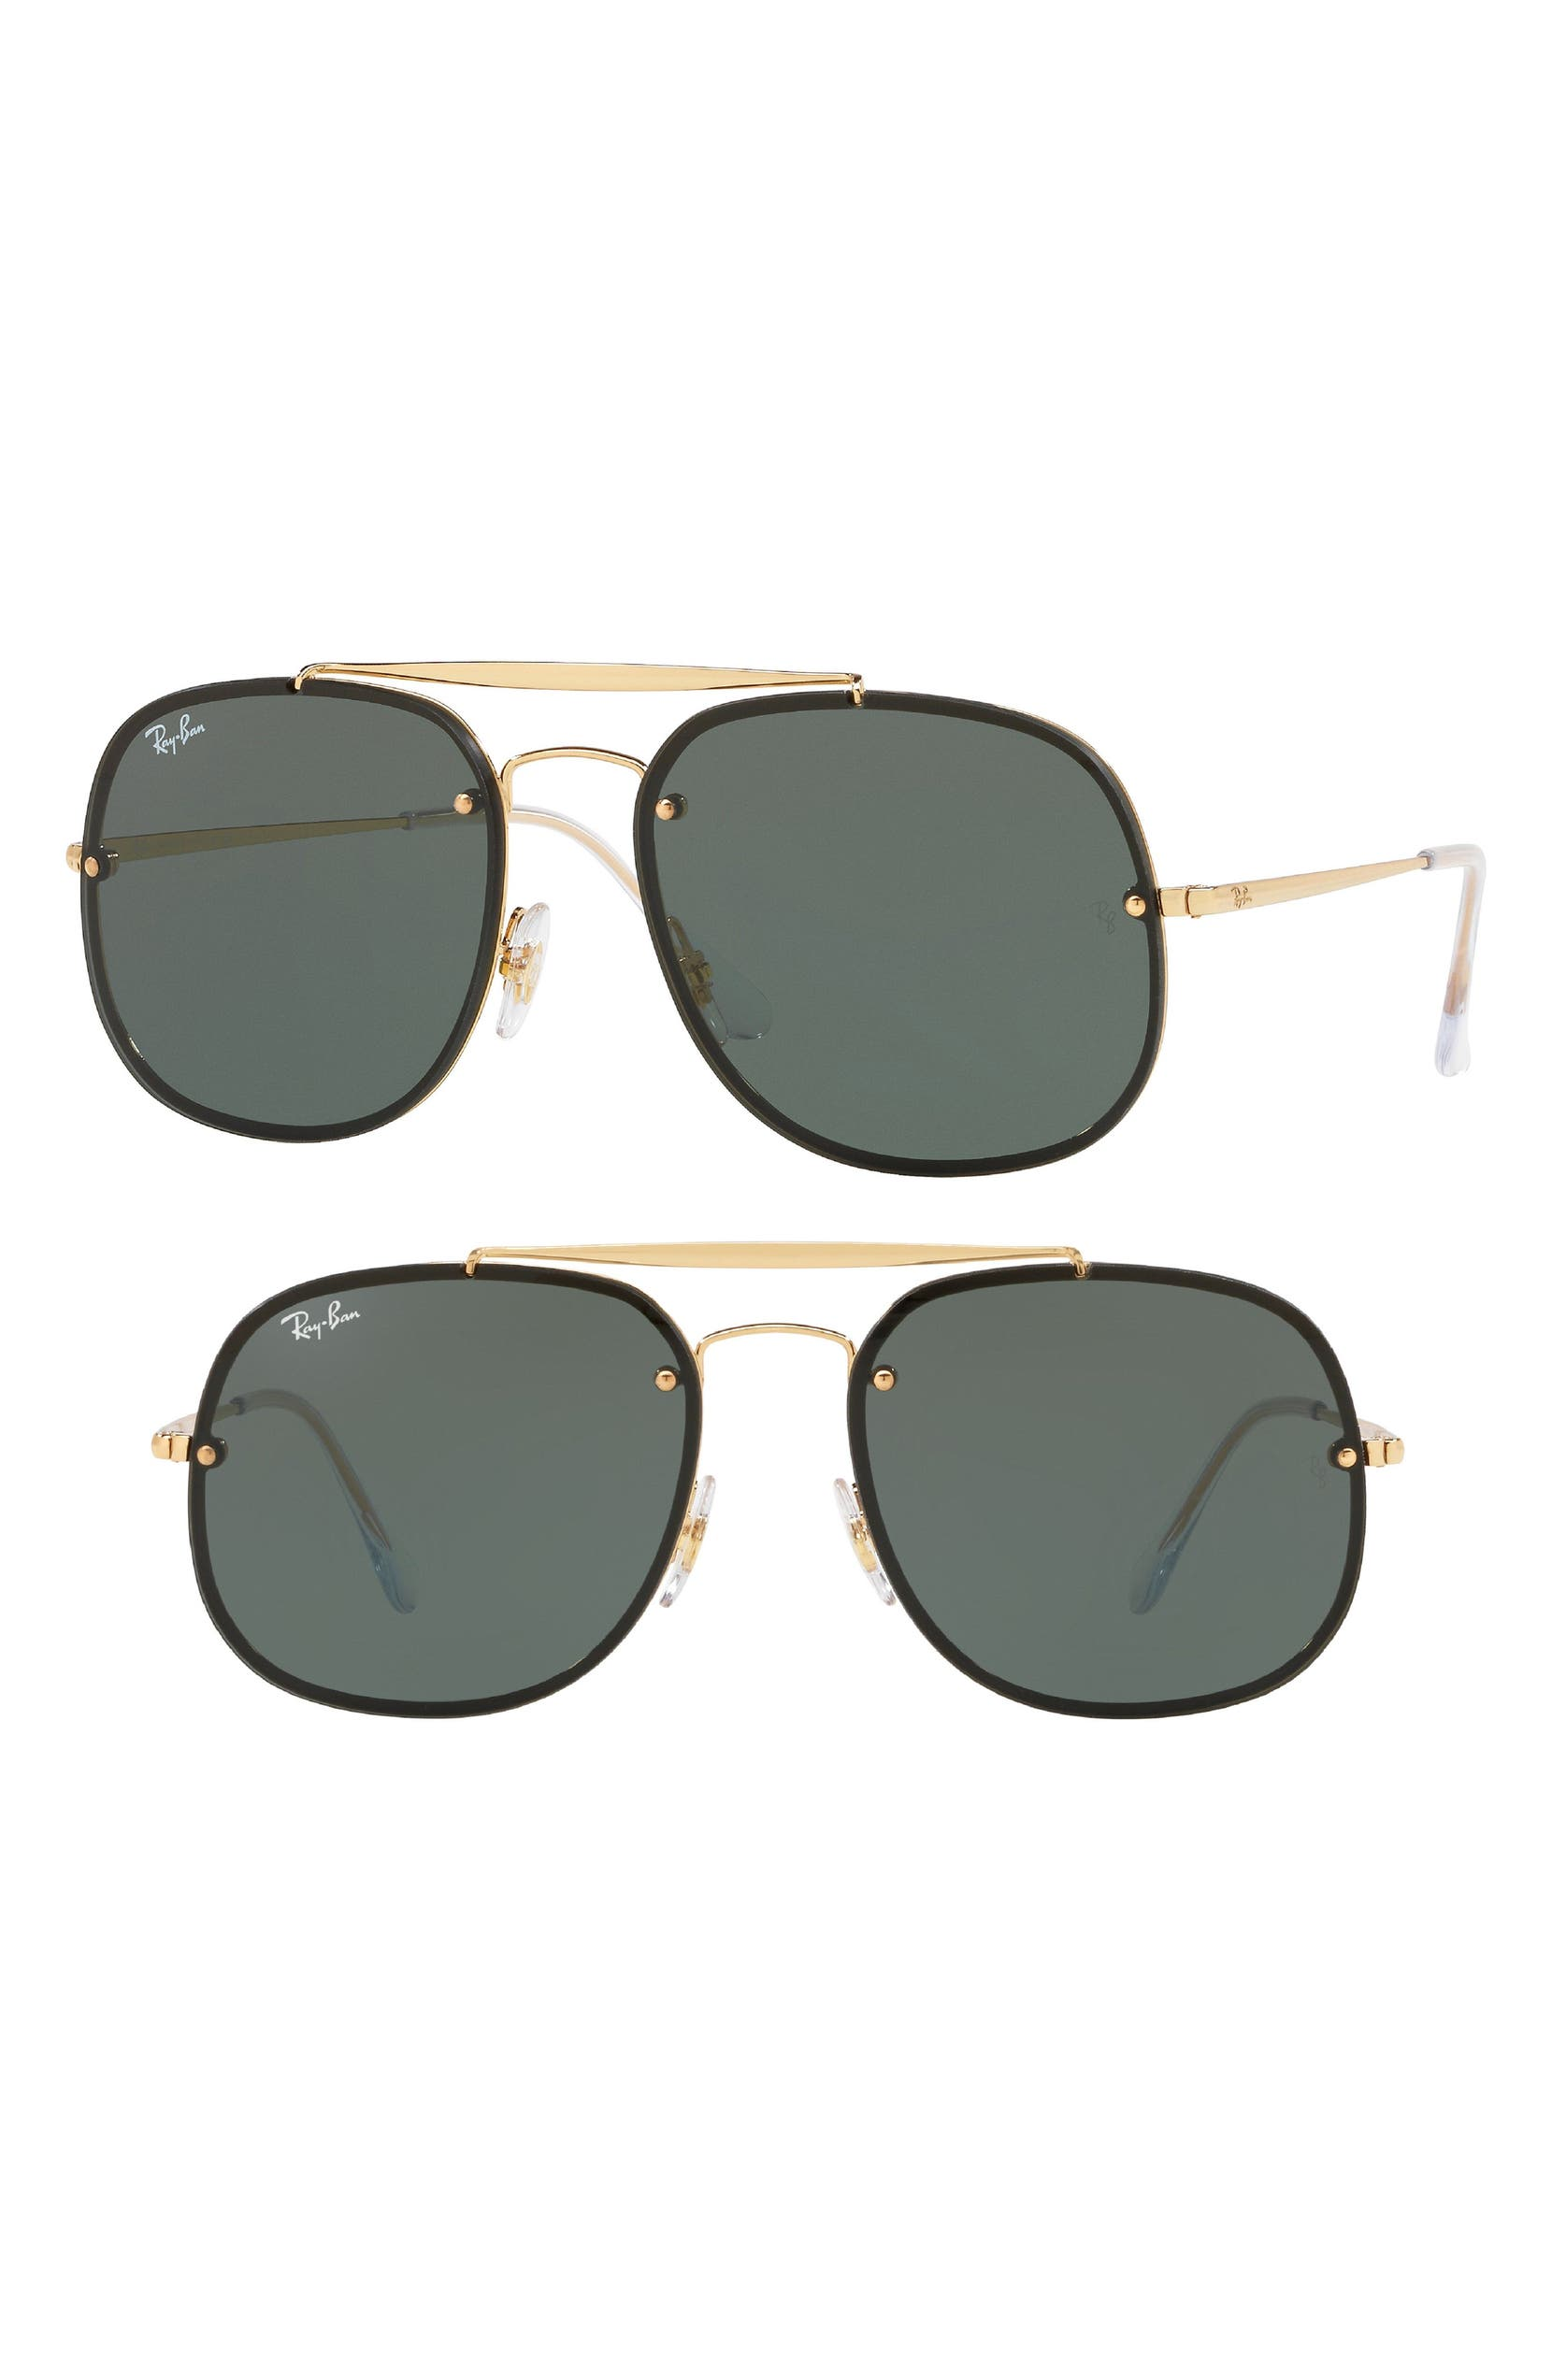 568f7256fe Ray-Ban Blaze General 58mm Aviator Sunglasses